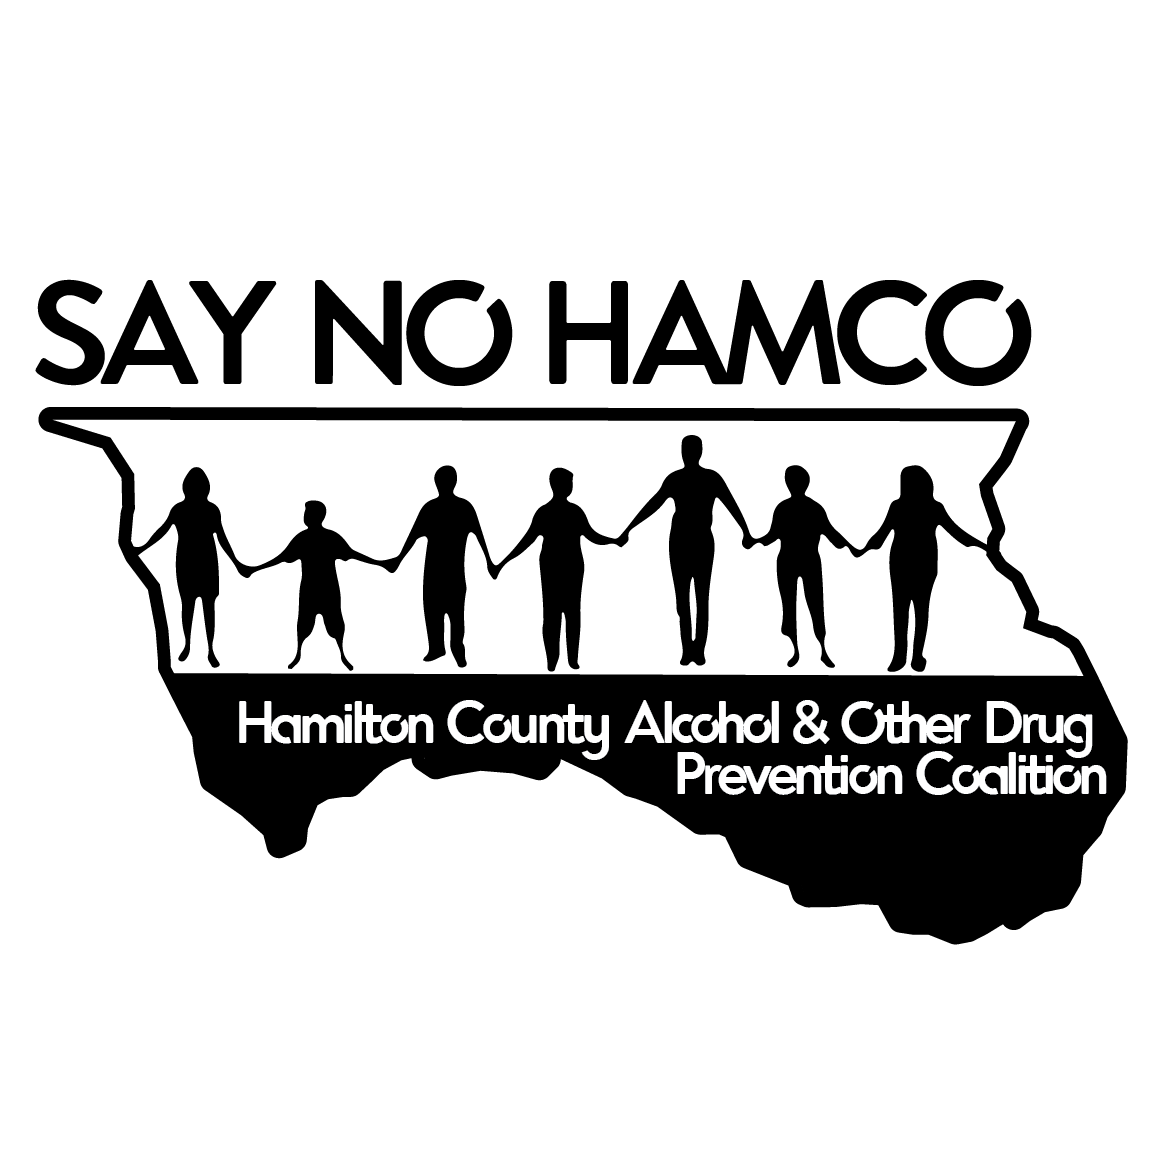 Hamilton County Alcohol and Other Drug Prevention